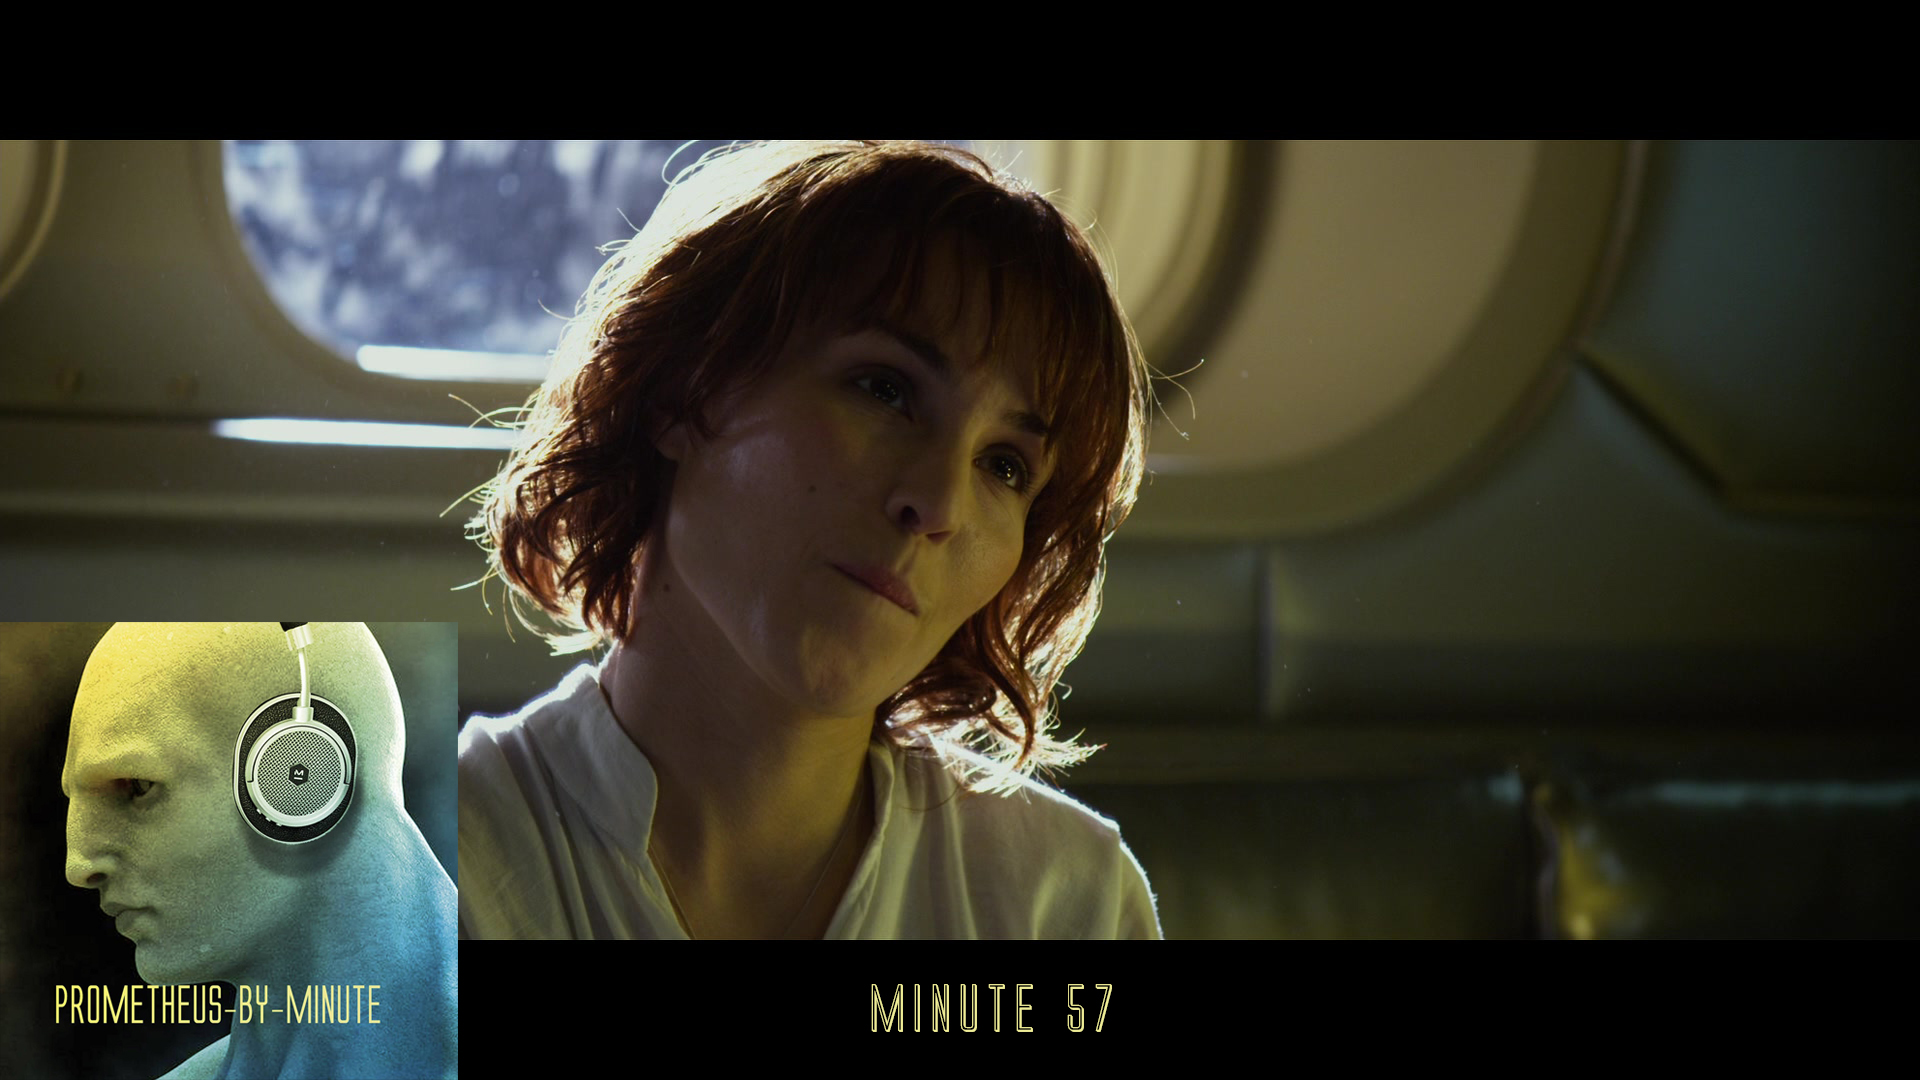 Prometheus-by-Minute 57 – Travian Designs